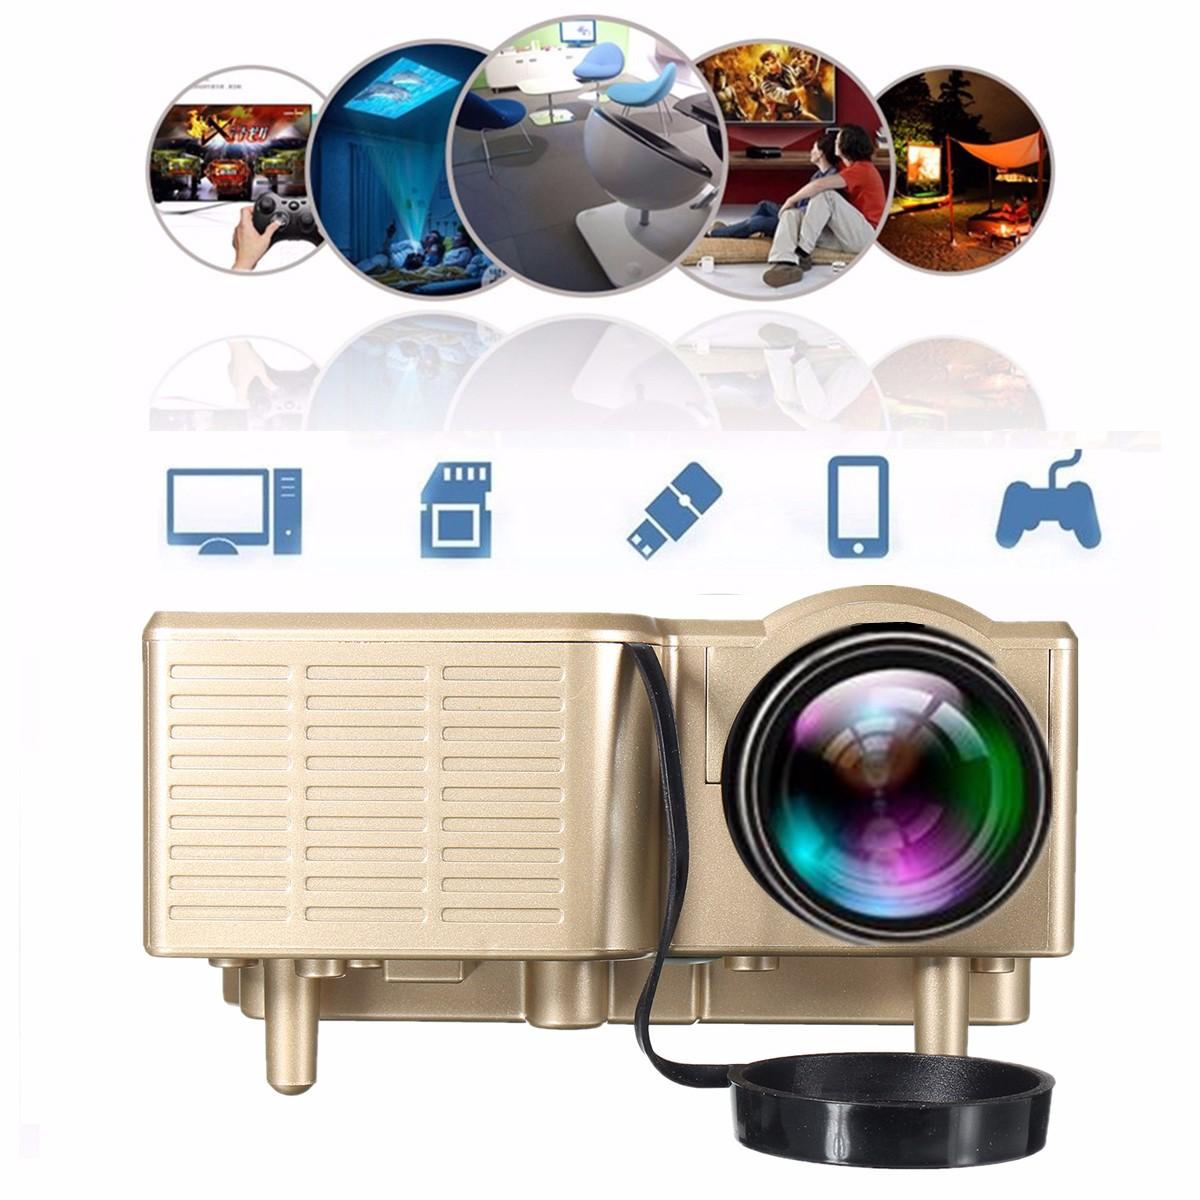 GM40 1080P HD Portable Video Home Theater Projector Support VGA/SD/USB/AV for Cellphone PC